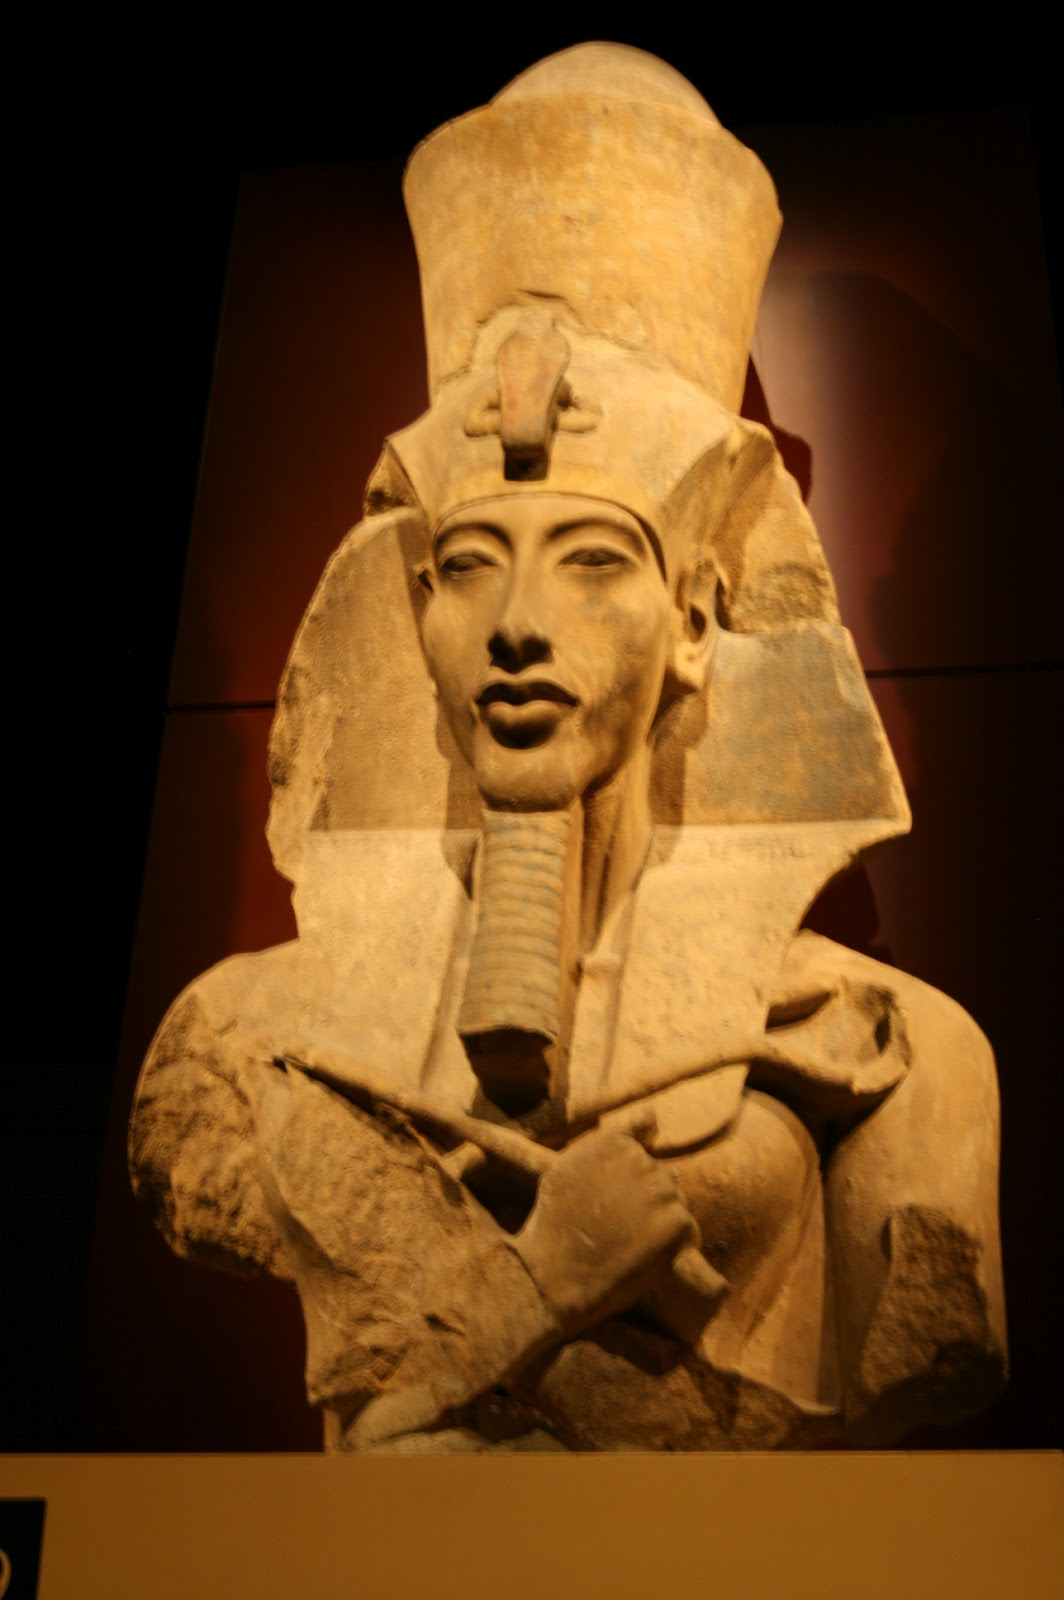 the life rule and death of amenhotep iv in egypt (including a great reverence for the dead and possibly a belief in life after death) the controversial amenhotep iv under kushite rule, egypt clashed.